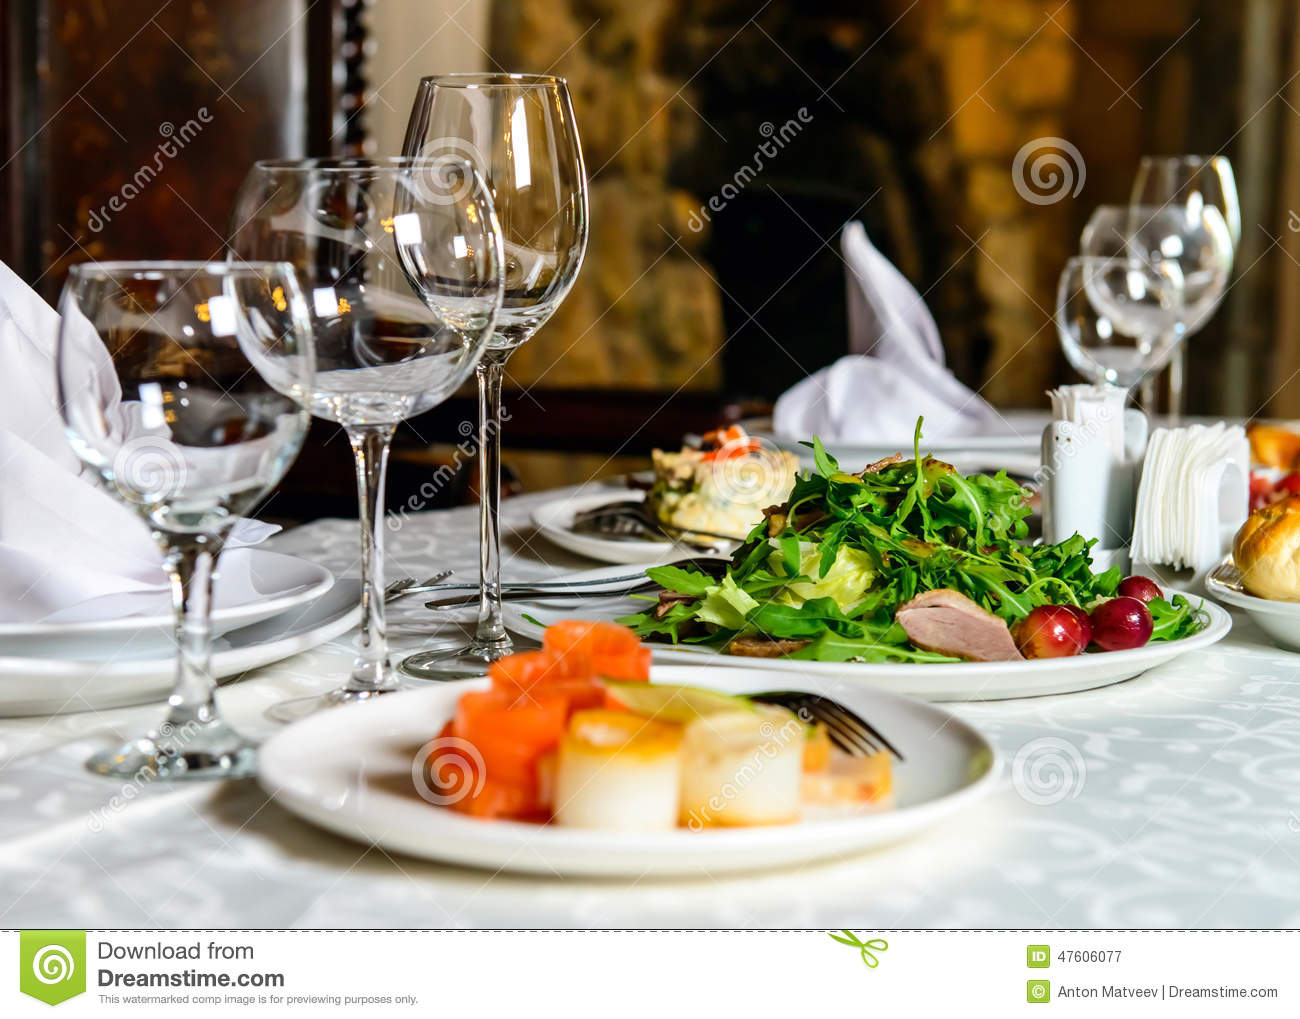 Served banquet restaurant table stock image image of for On the table restaurant